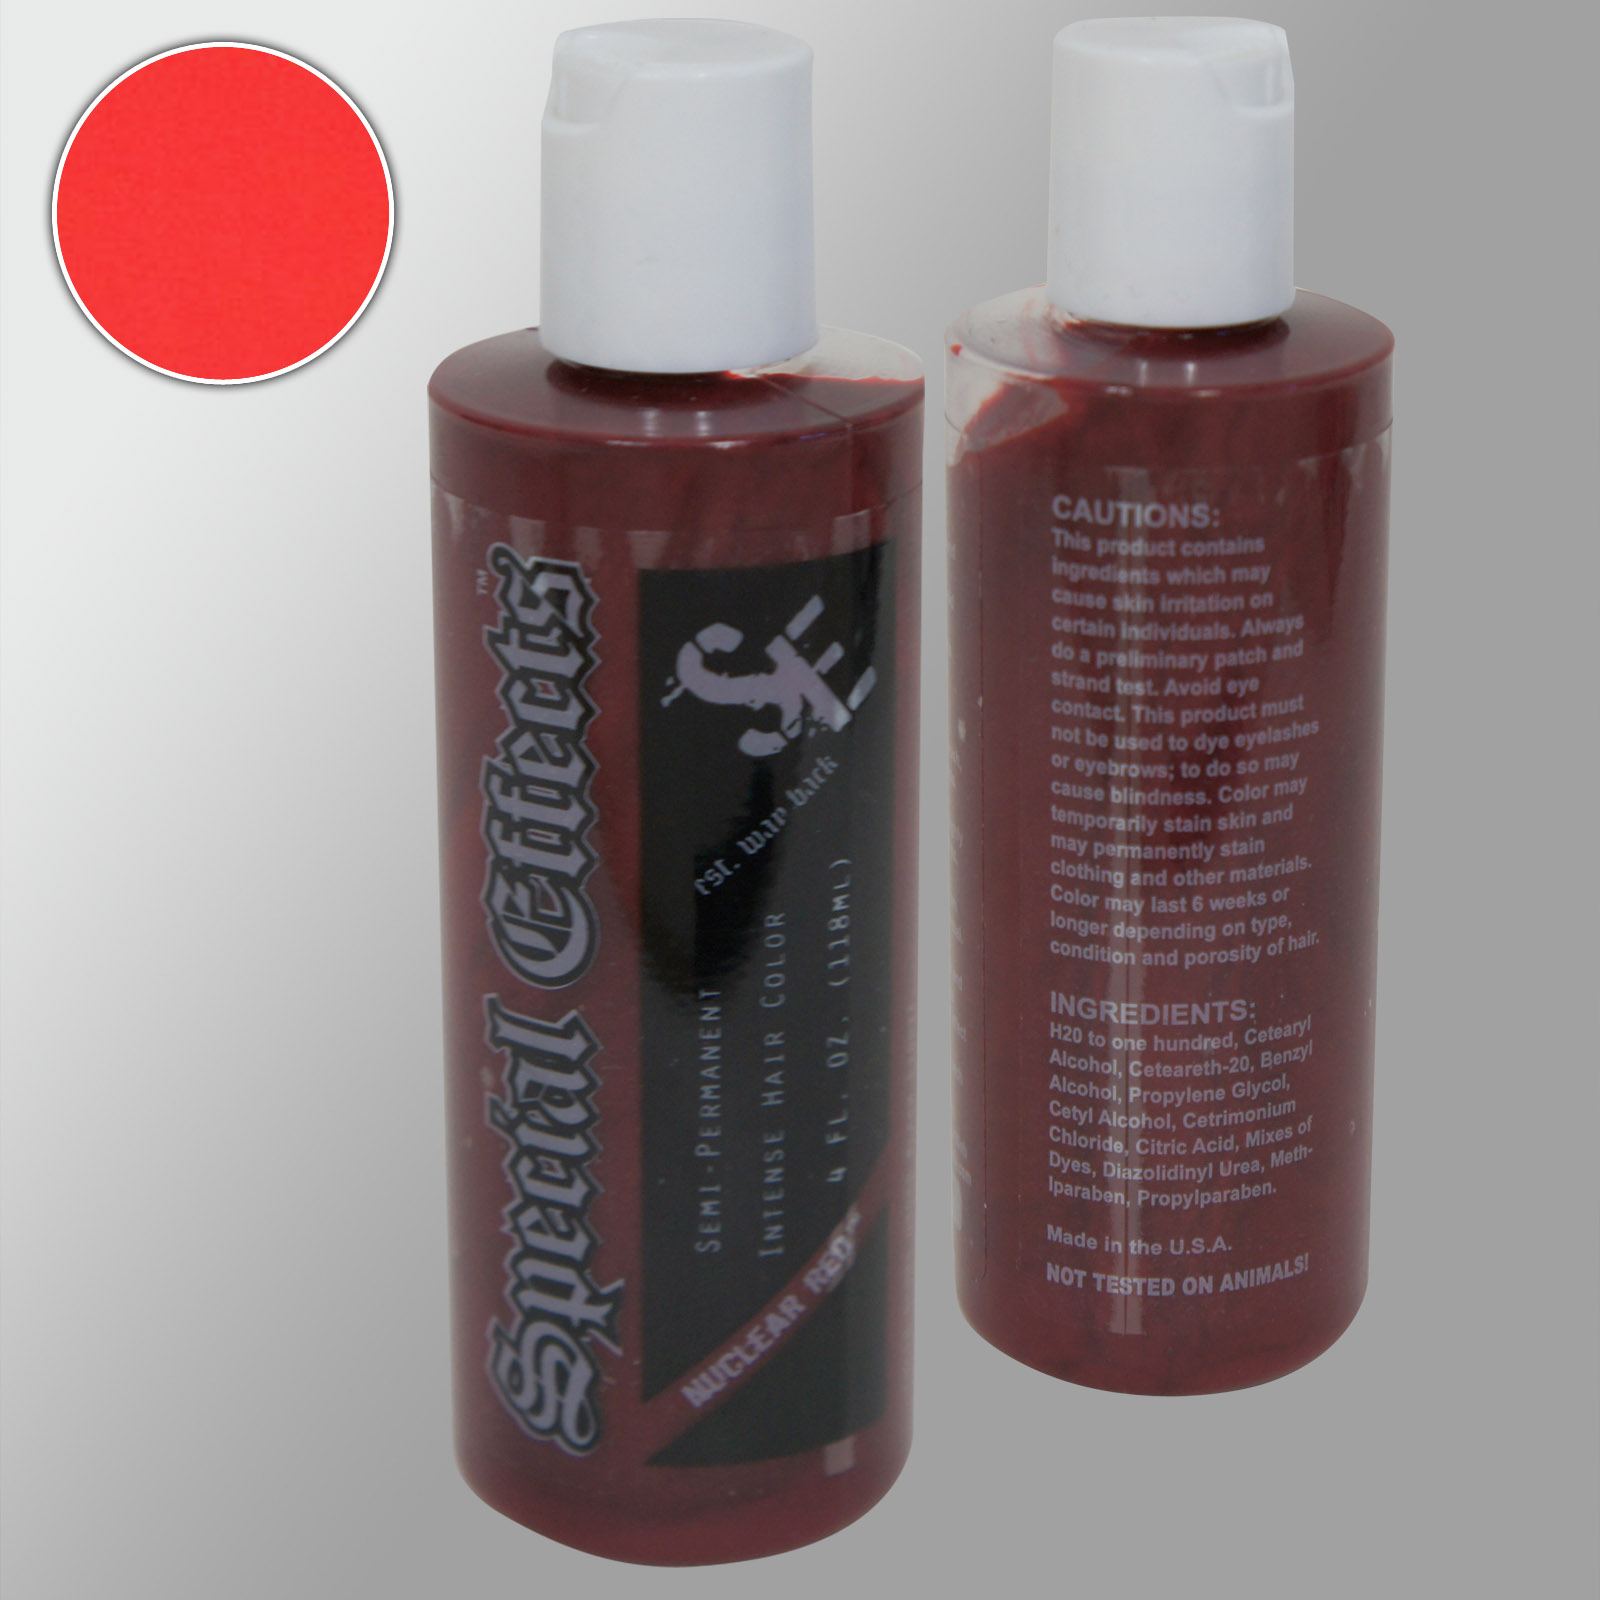 SPECIAL-EFFECTS-Semi-Permanent-VEGAN-Hair-Dye-Color-4-Oz-Punk-Rock-W-Free-Brush